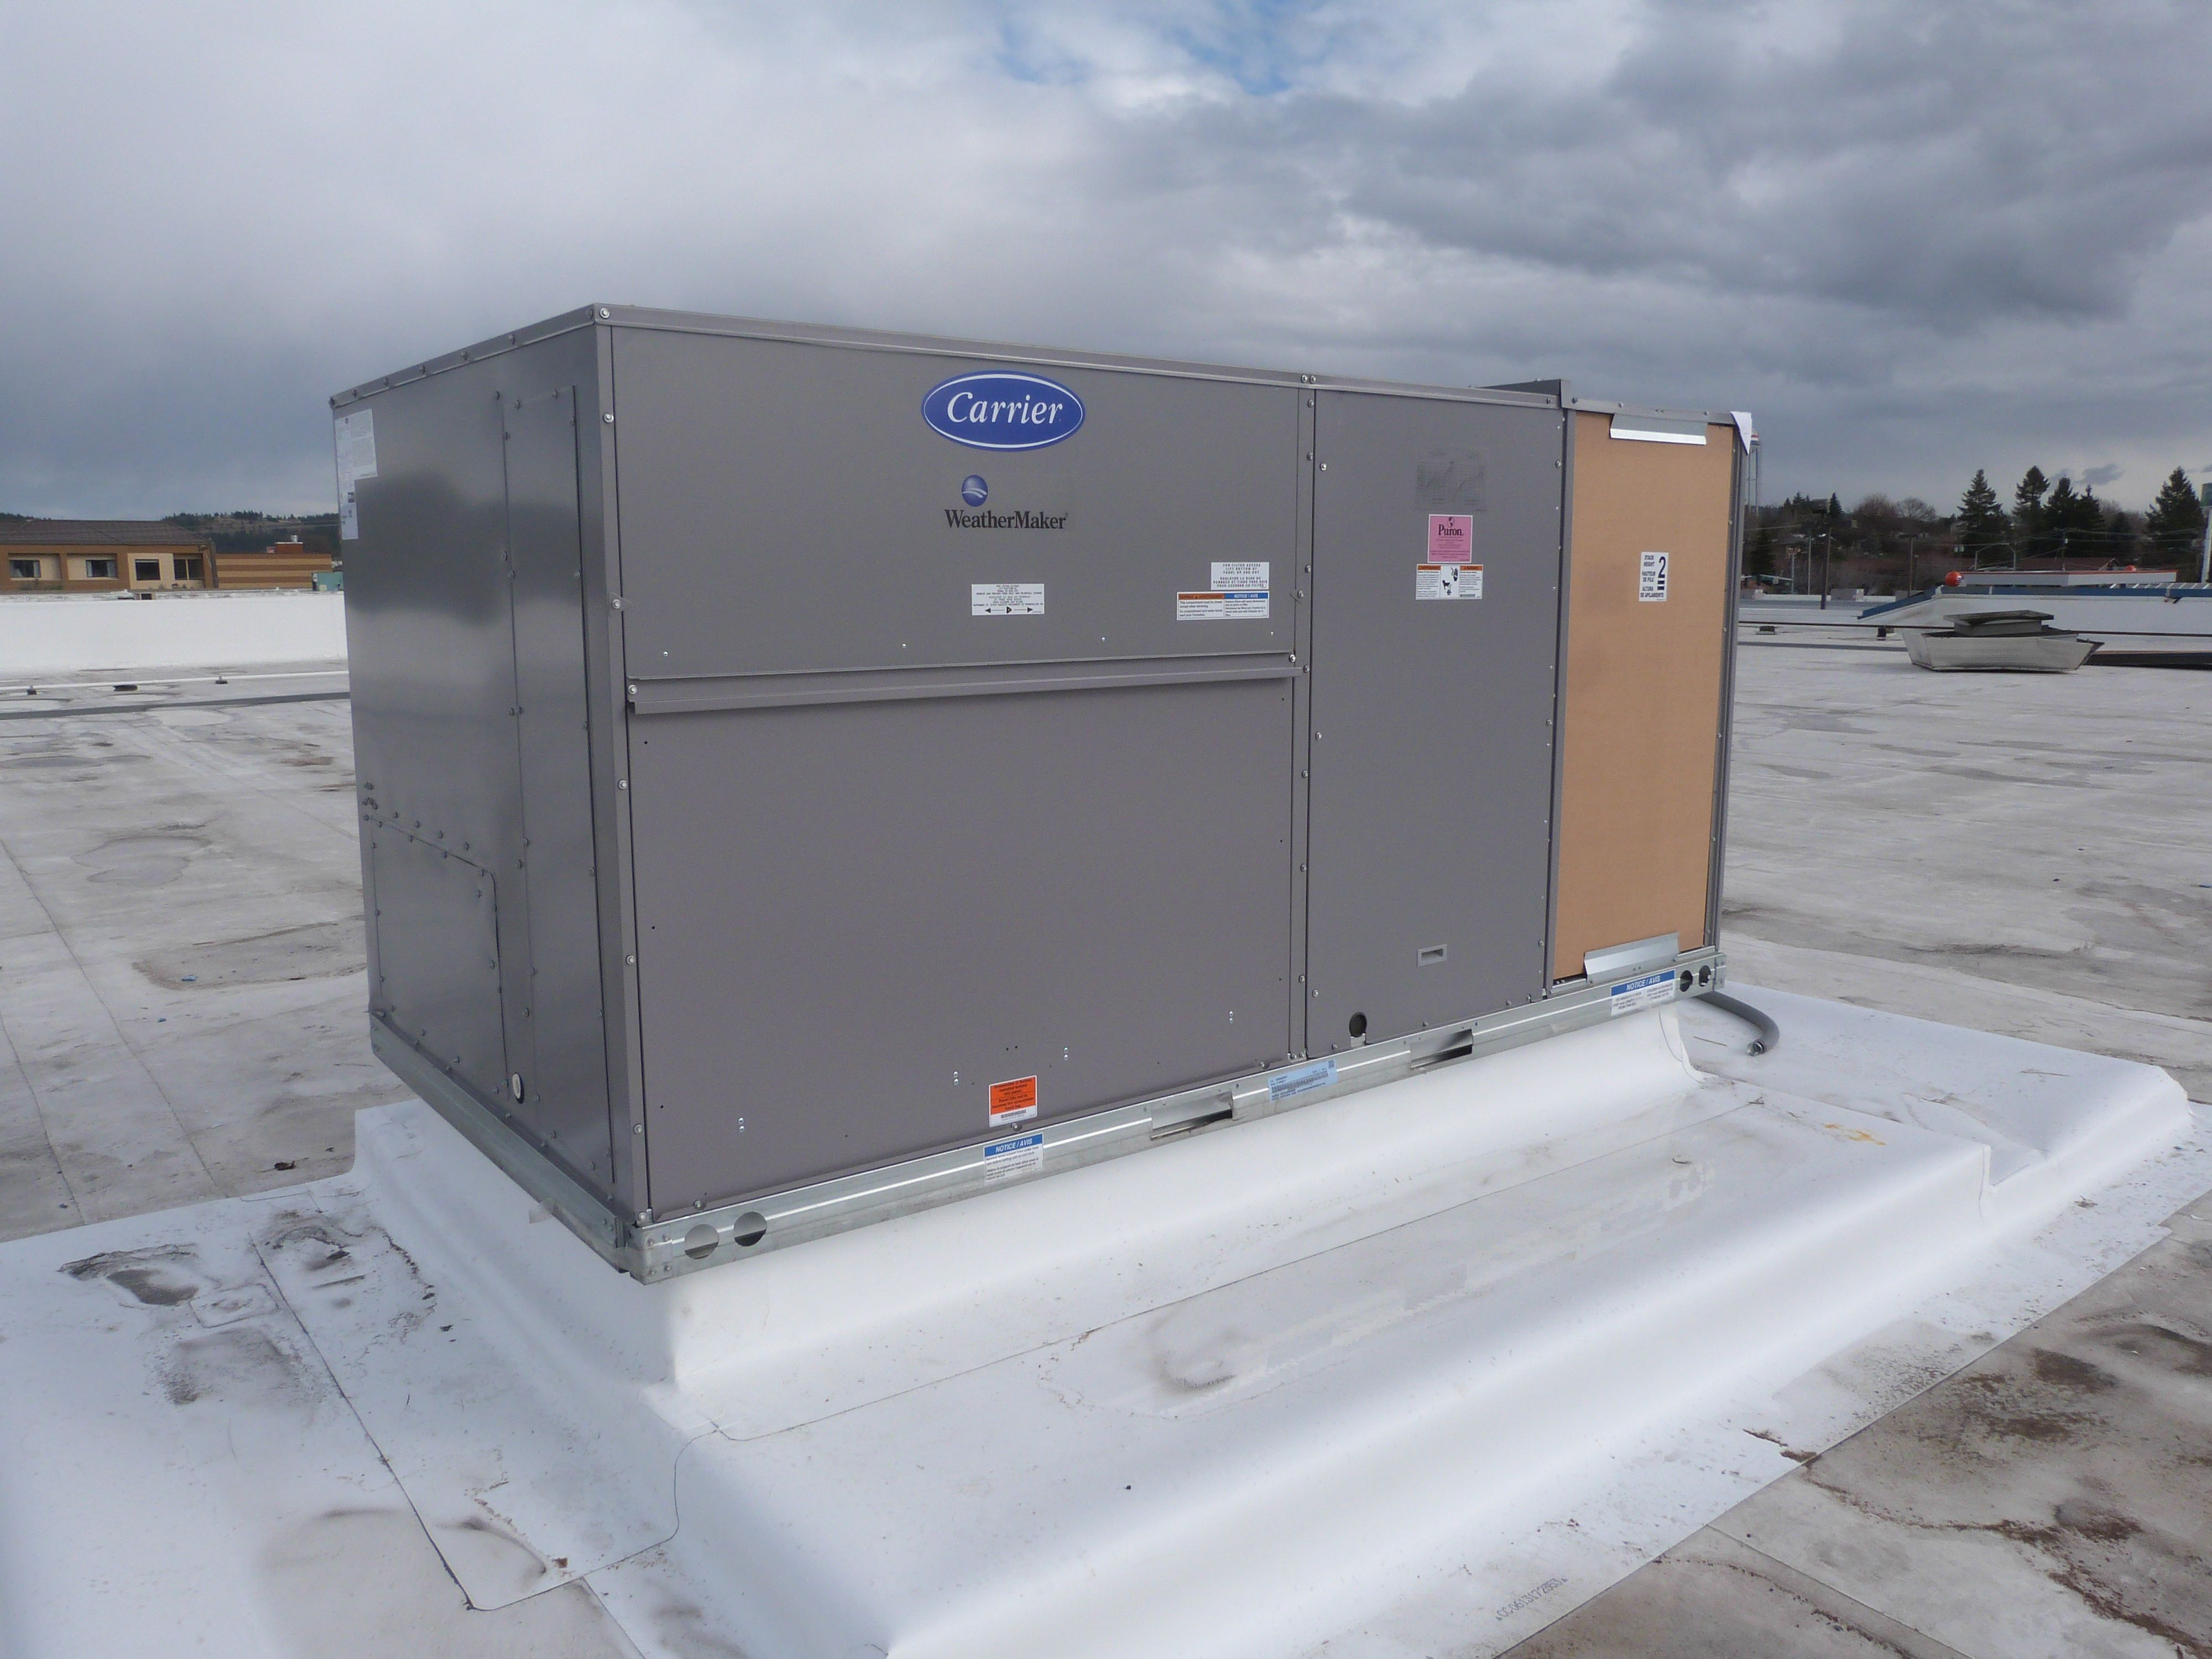 Commercial Rooftop Unit Installation Heating Air Conditioning Hvac Services Commercial Hvac Heating And Air Conditioning